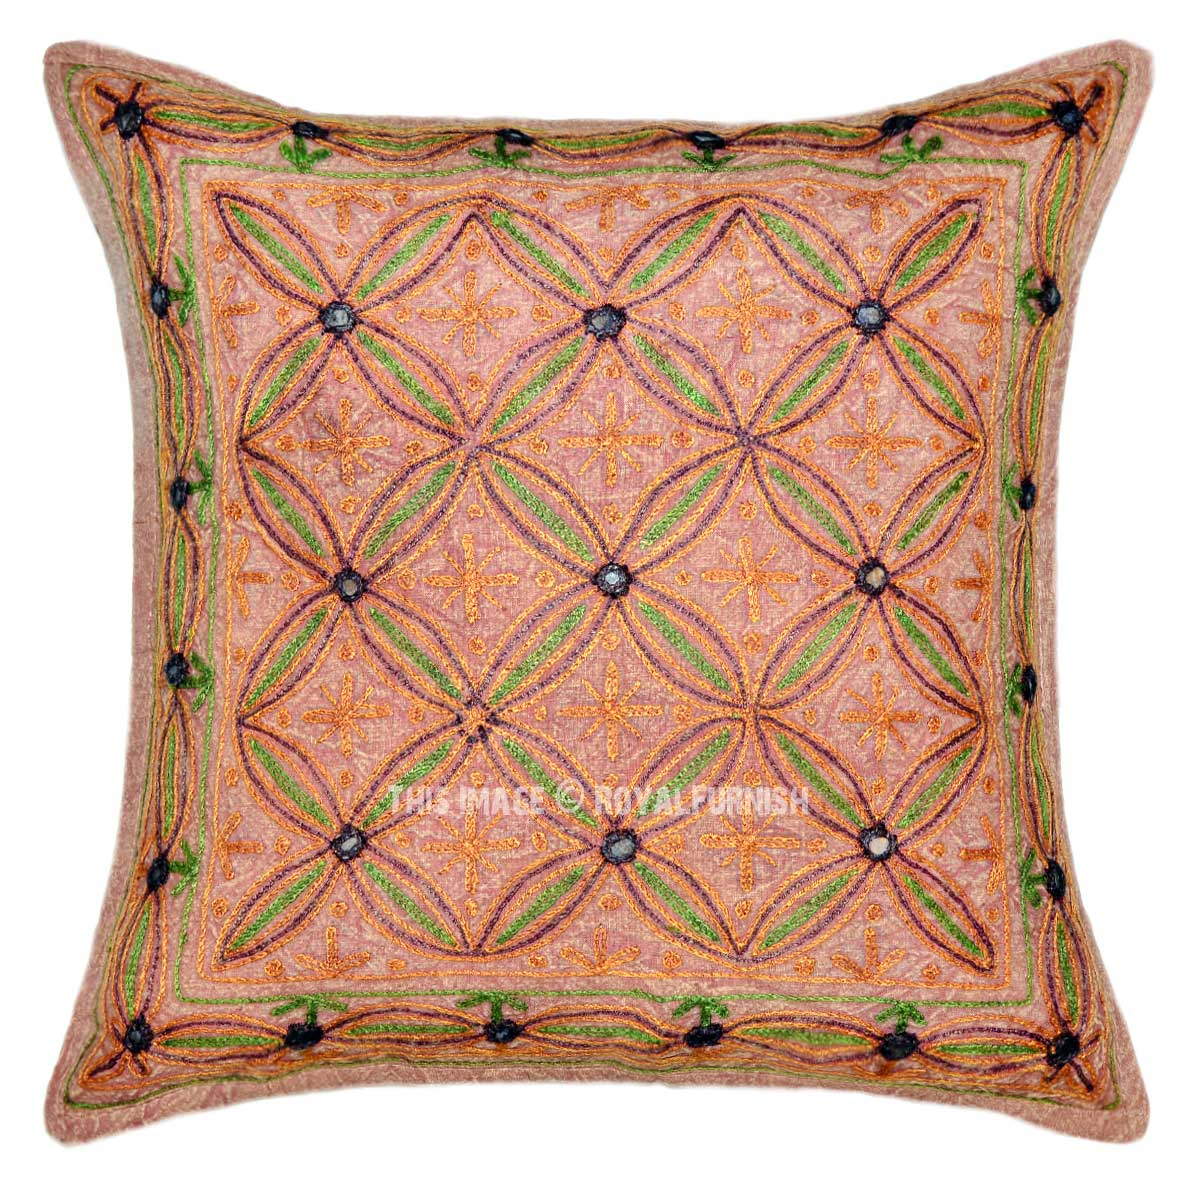 Brown Decorative 16X16 Bohemian Floral Ari Embroidered Pillow Cover - RoyalFurnish.com